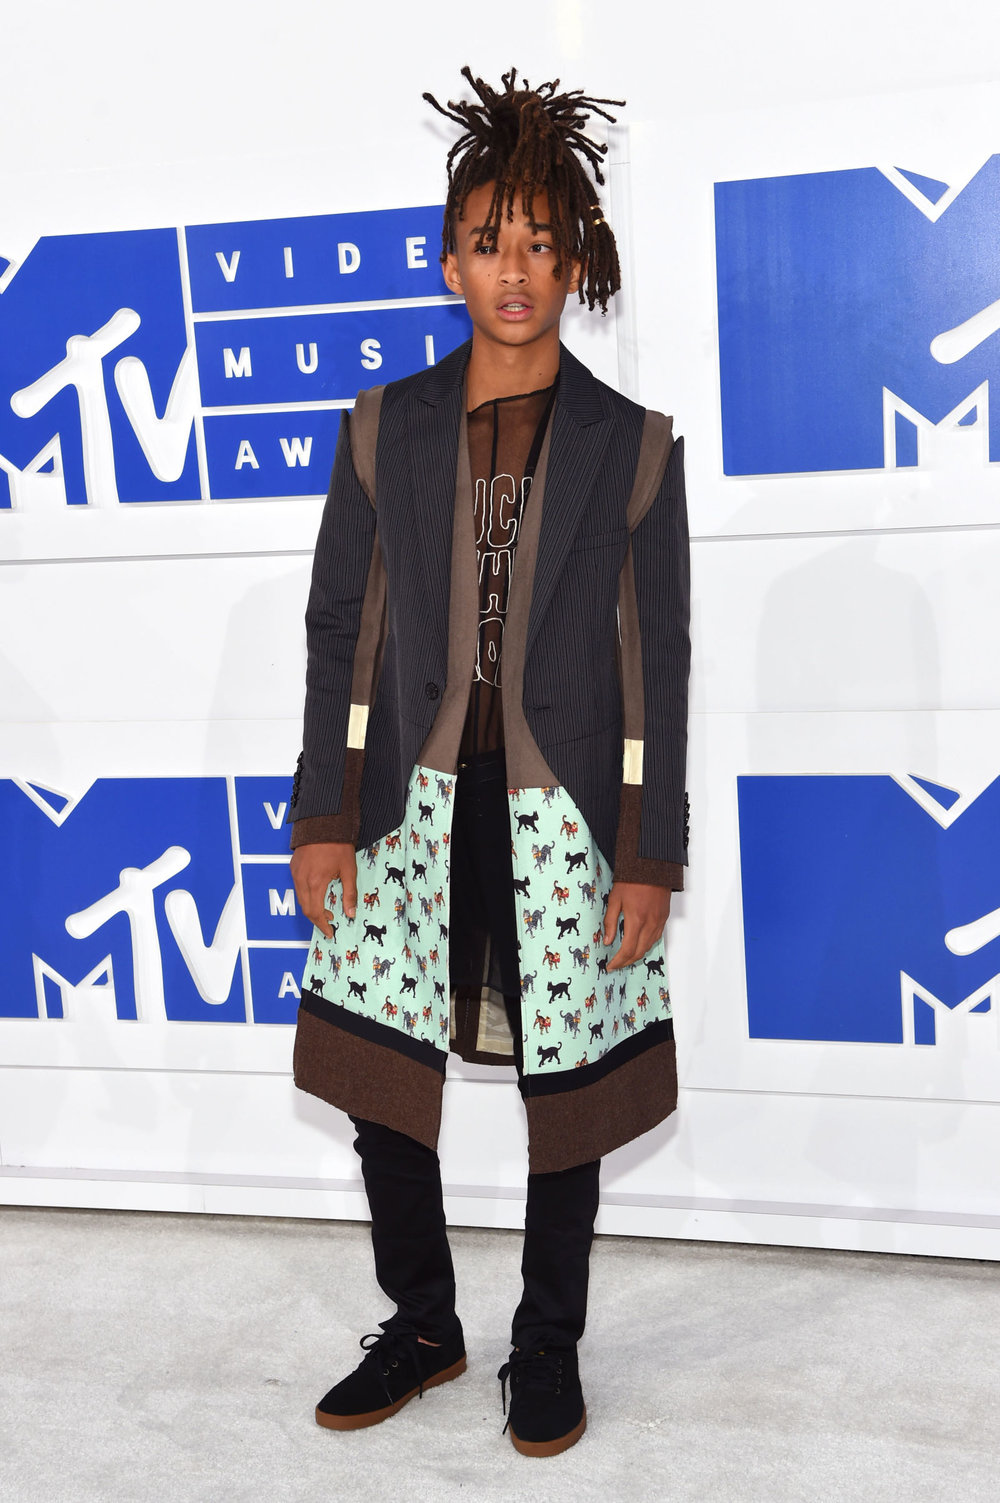 Could this kid get any cooler...There's nothing simple about this look but Jaden Smith manages to rock it so effortlessly its insane.